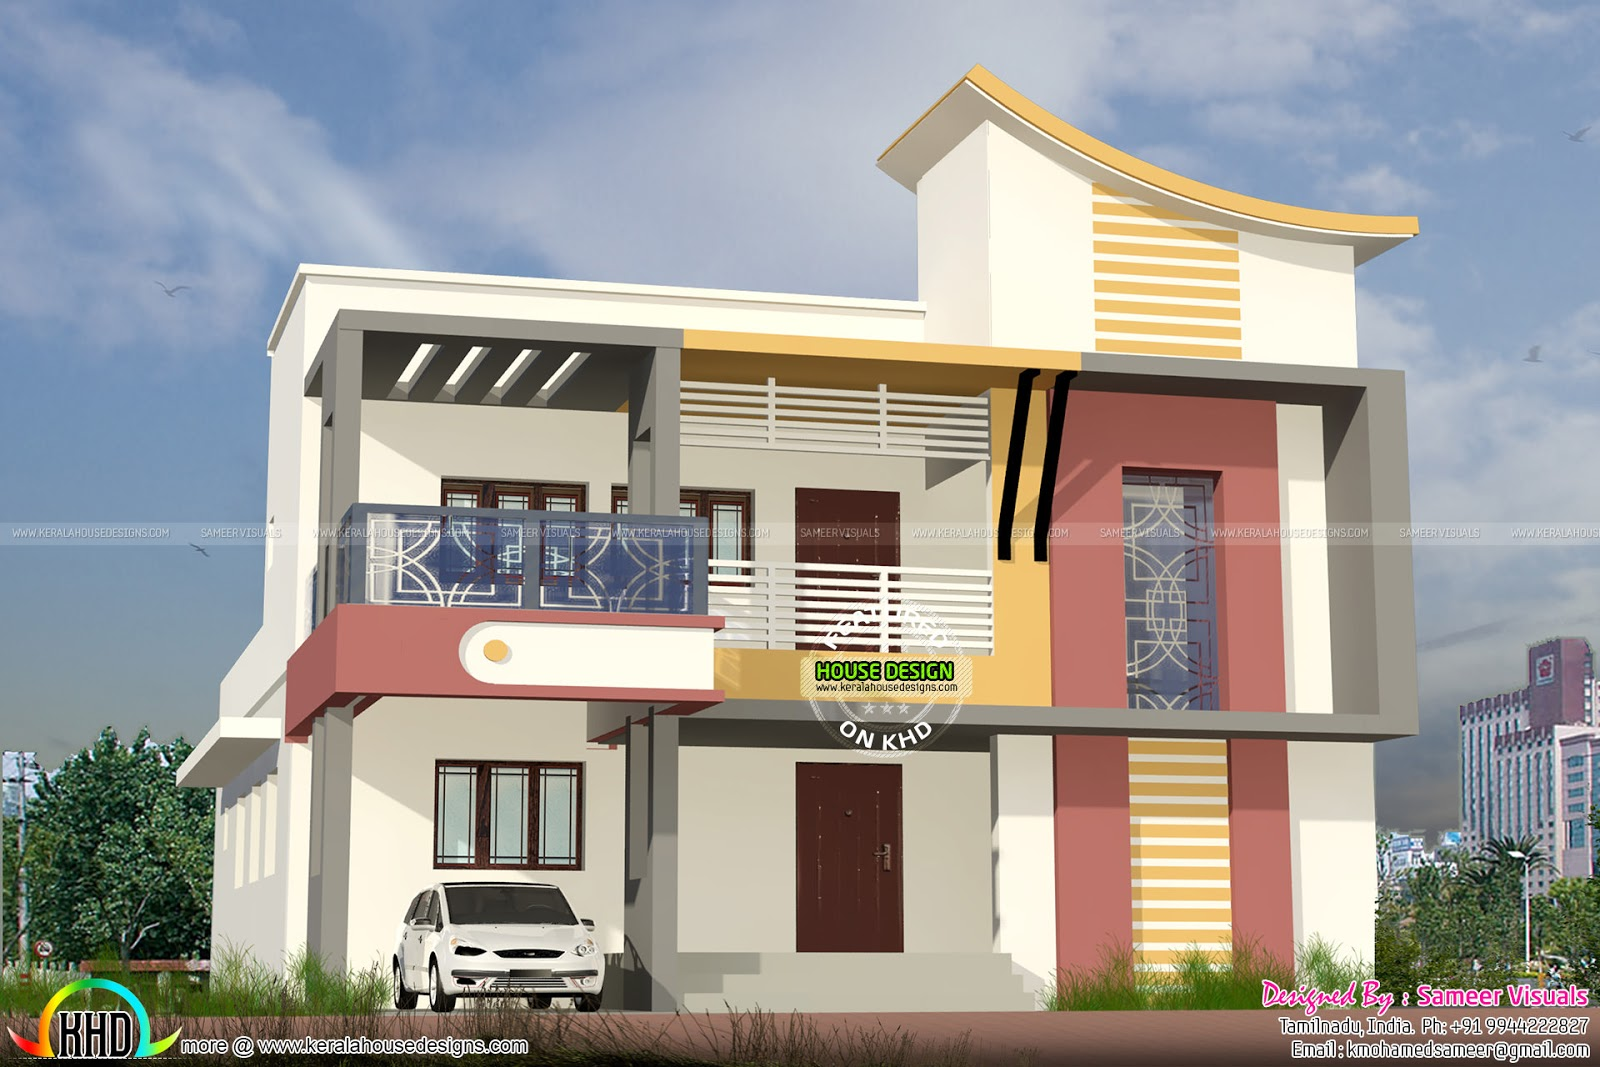 Tamilnadu model modern home kerala home design and floor for Tamilnadu house models